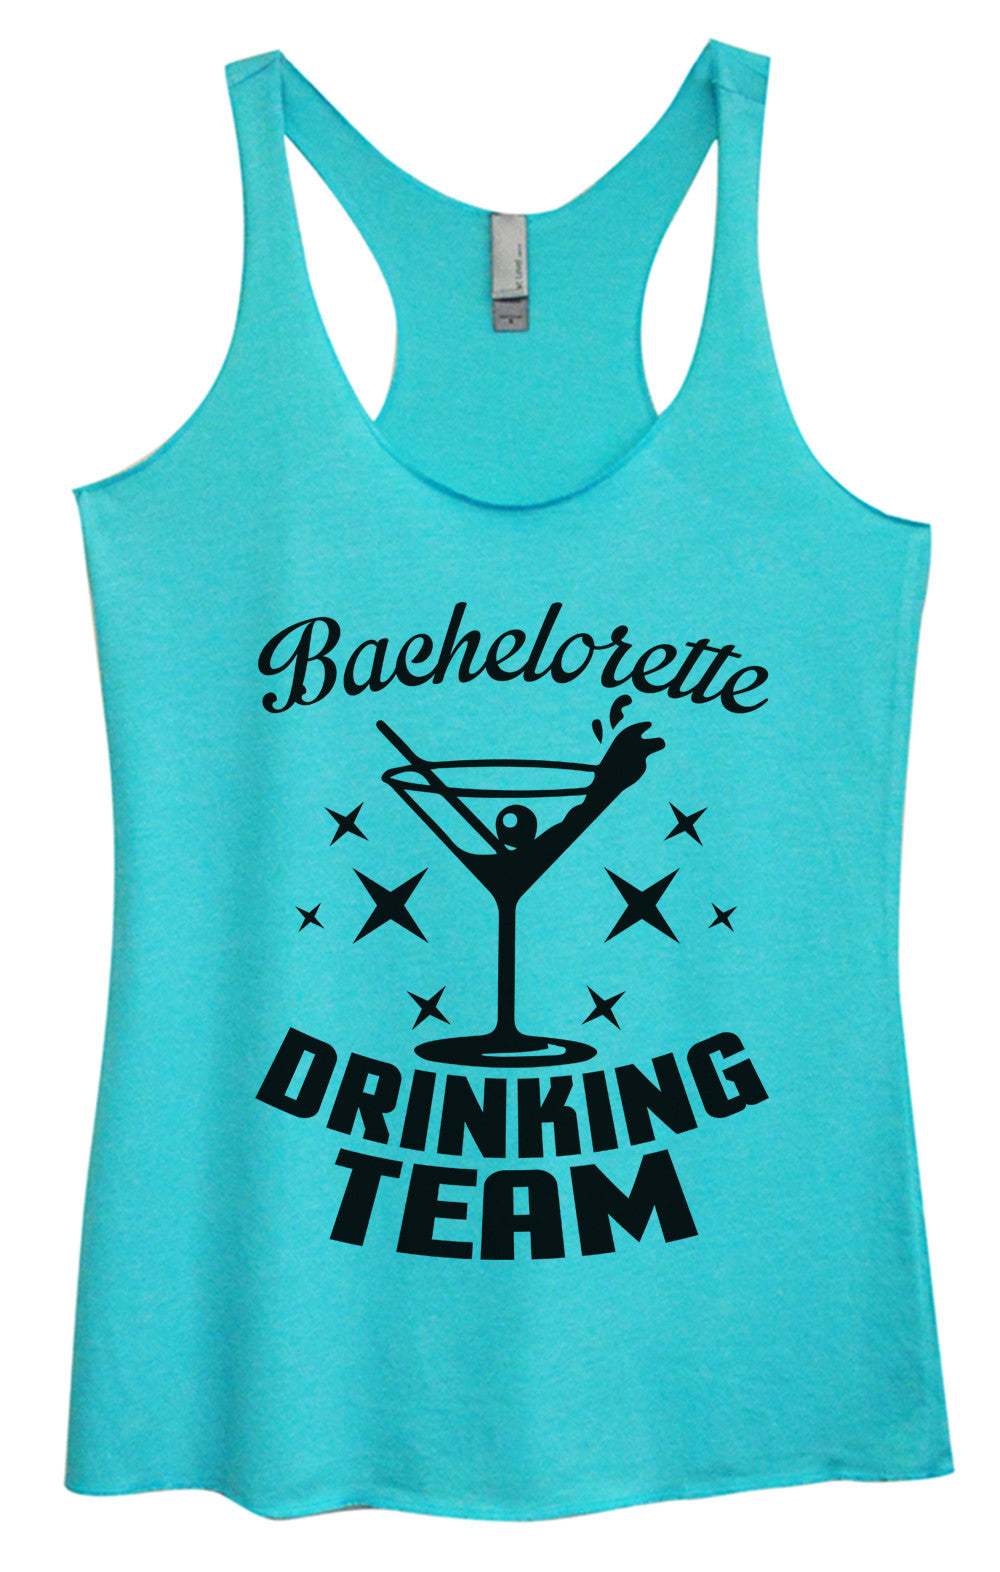 Womens Fashion Triblend Tank Top - Bachelorette Drinking Team - Tri-973 - Funny Shirts Tank Tops Burnouts and Triblends  - 4